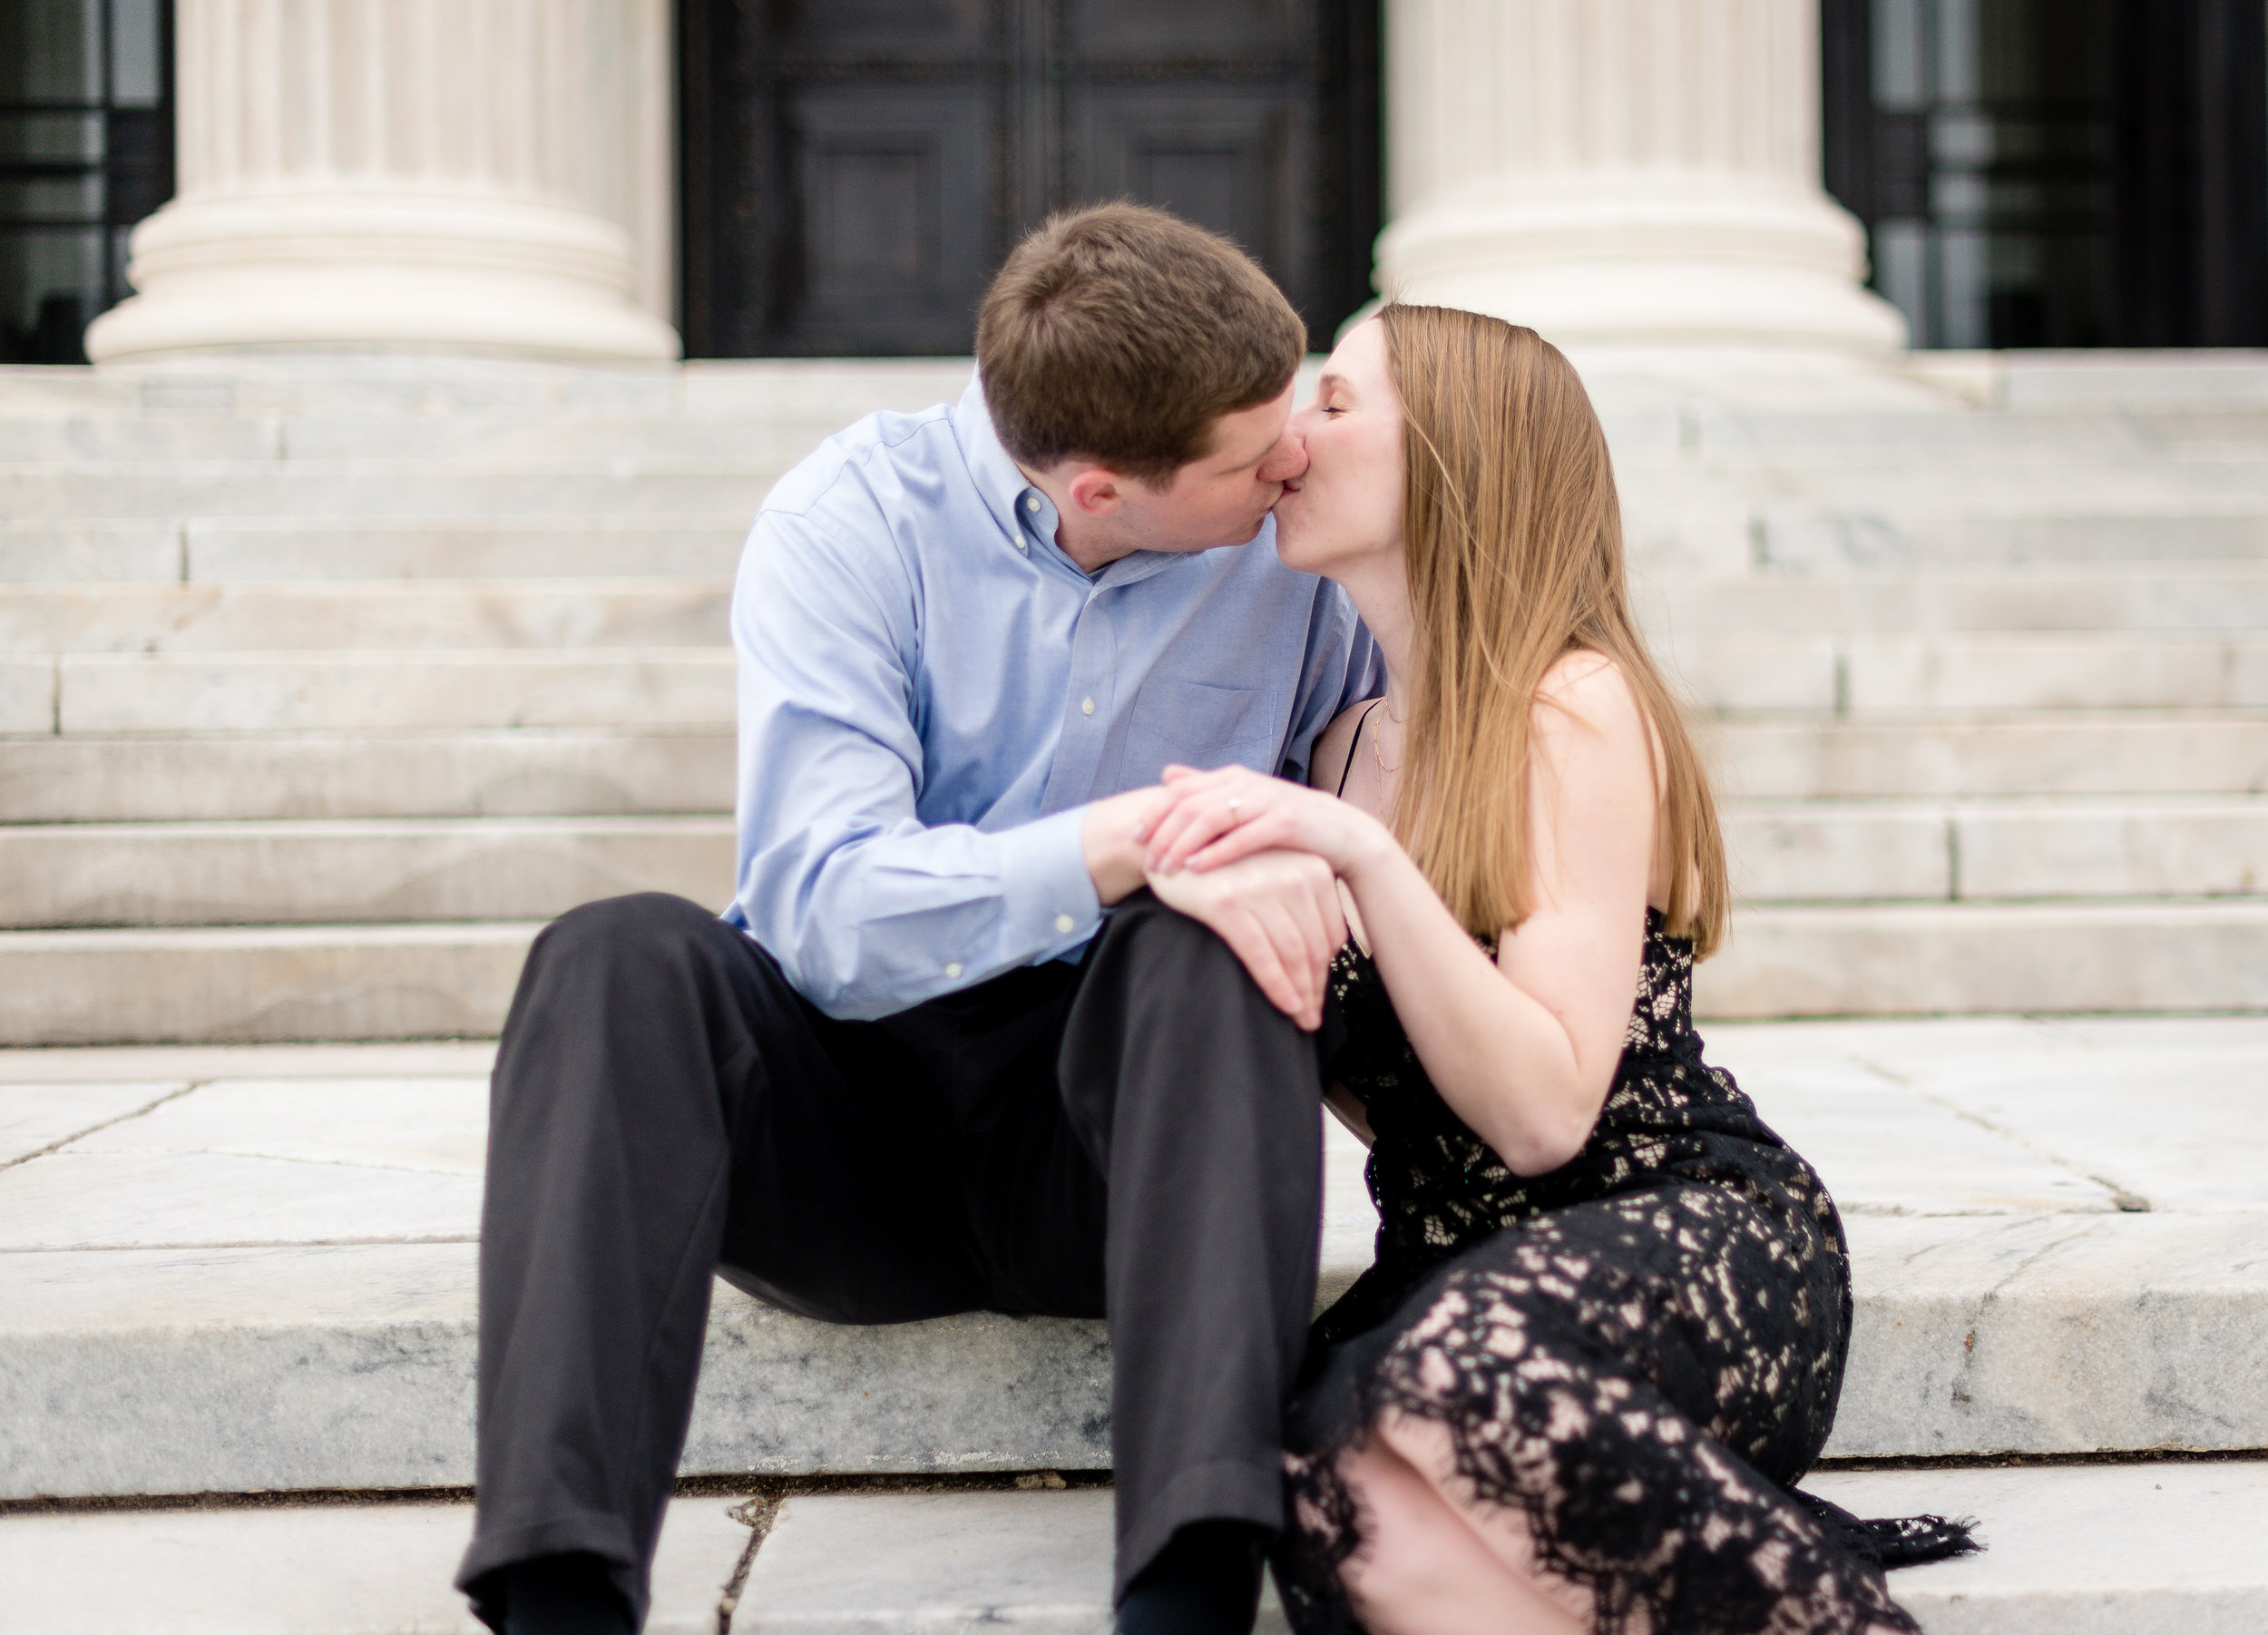 cleveland-art-musuem-engagement-session.jpg